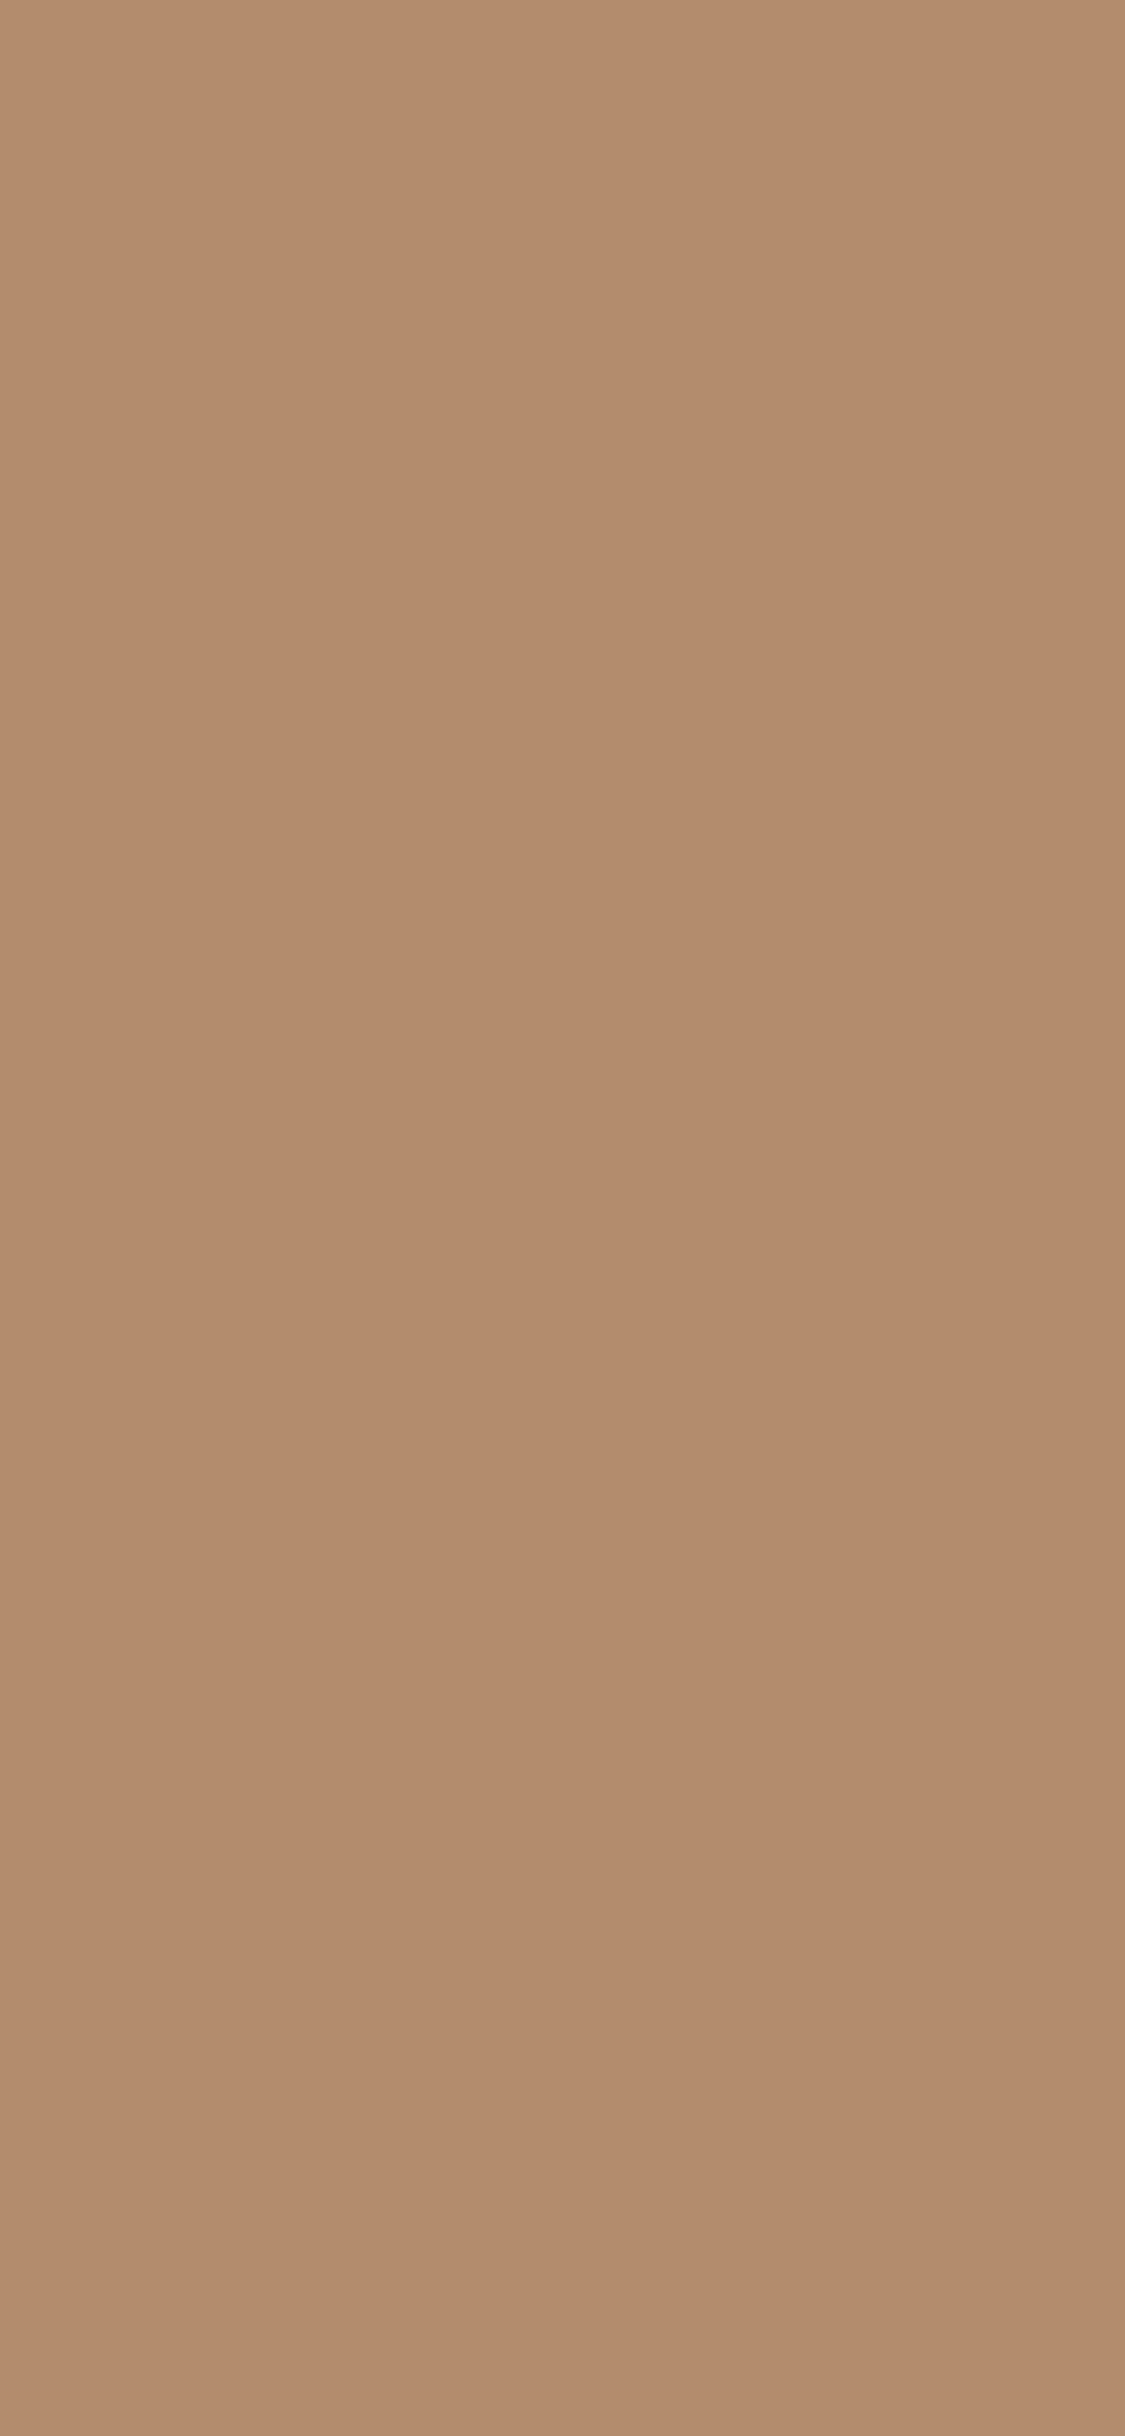 1125x2436 Light Taupe Solid Color Background